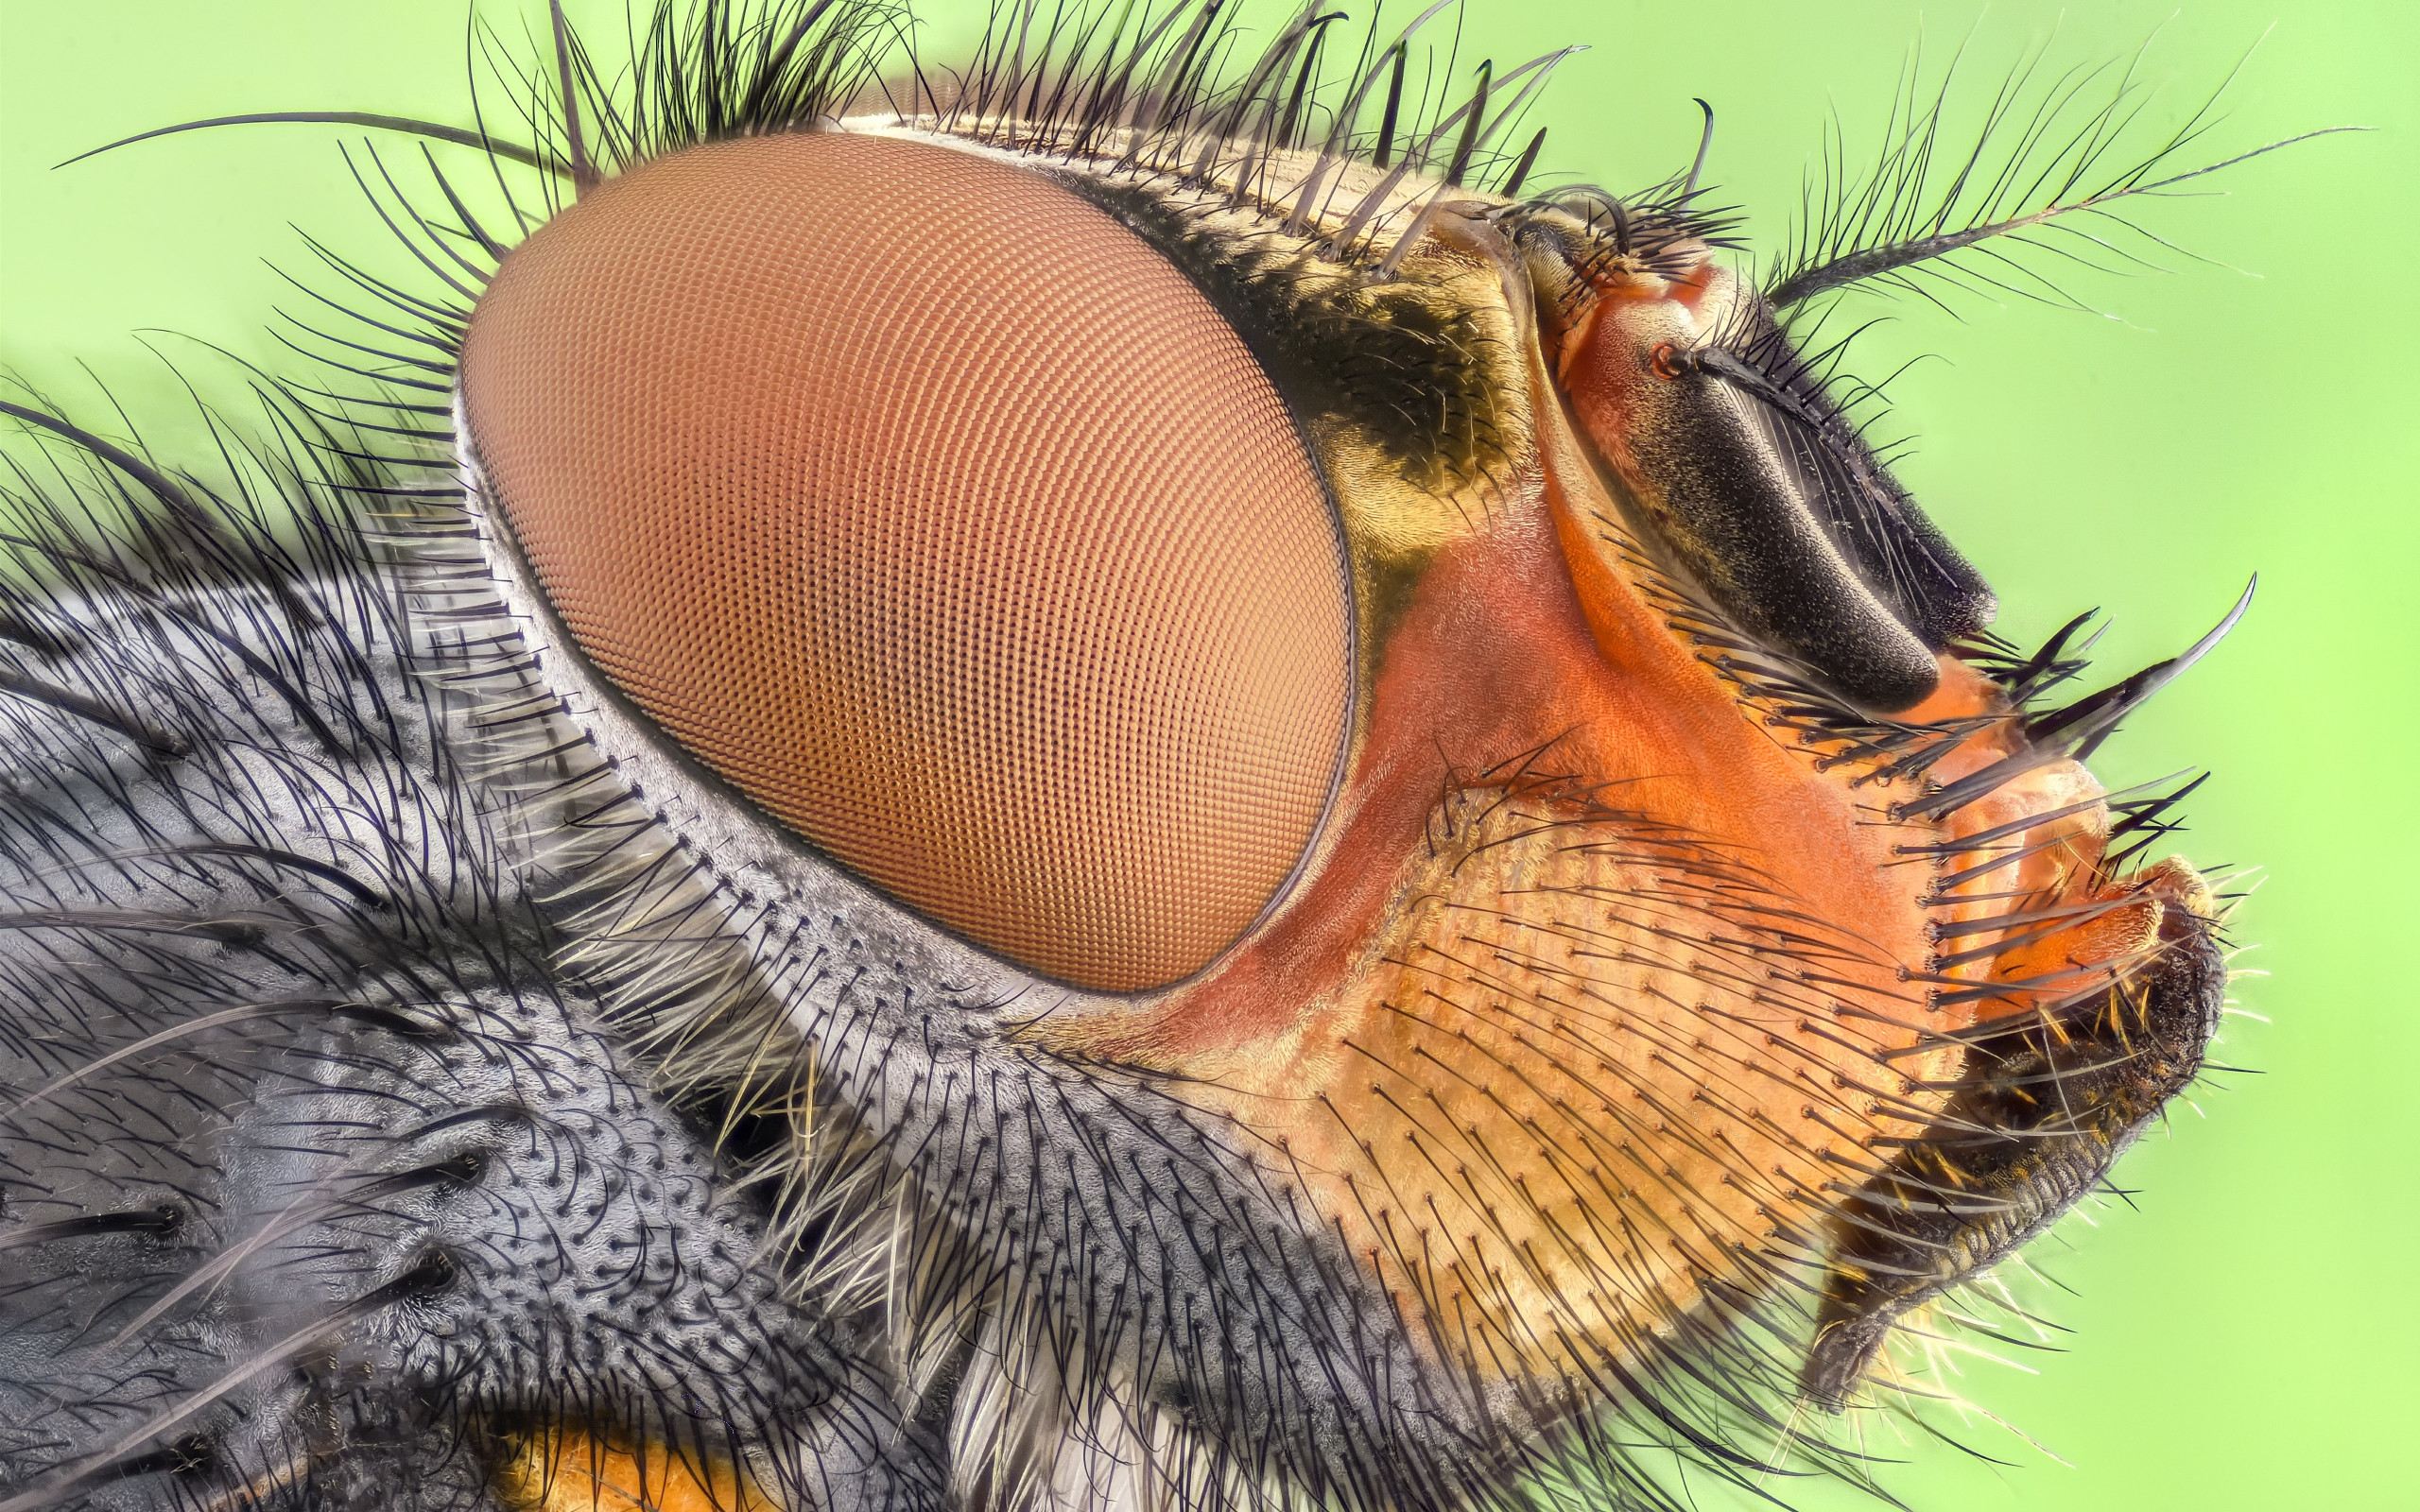 Close up insect portrait | 2560x1600 wallpaper